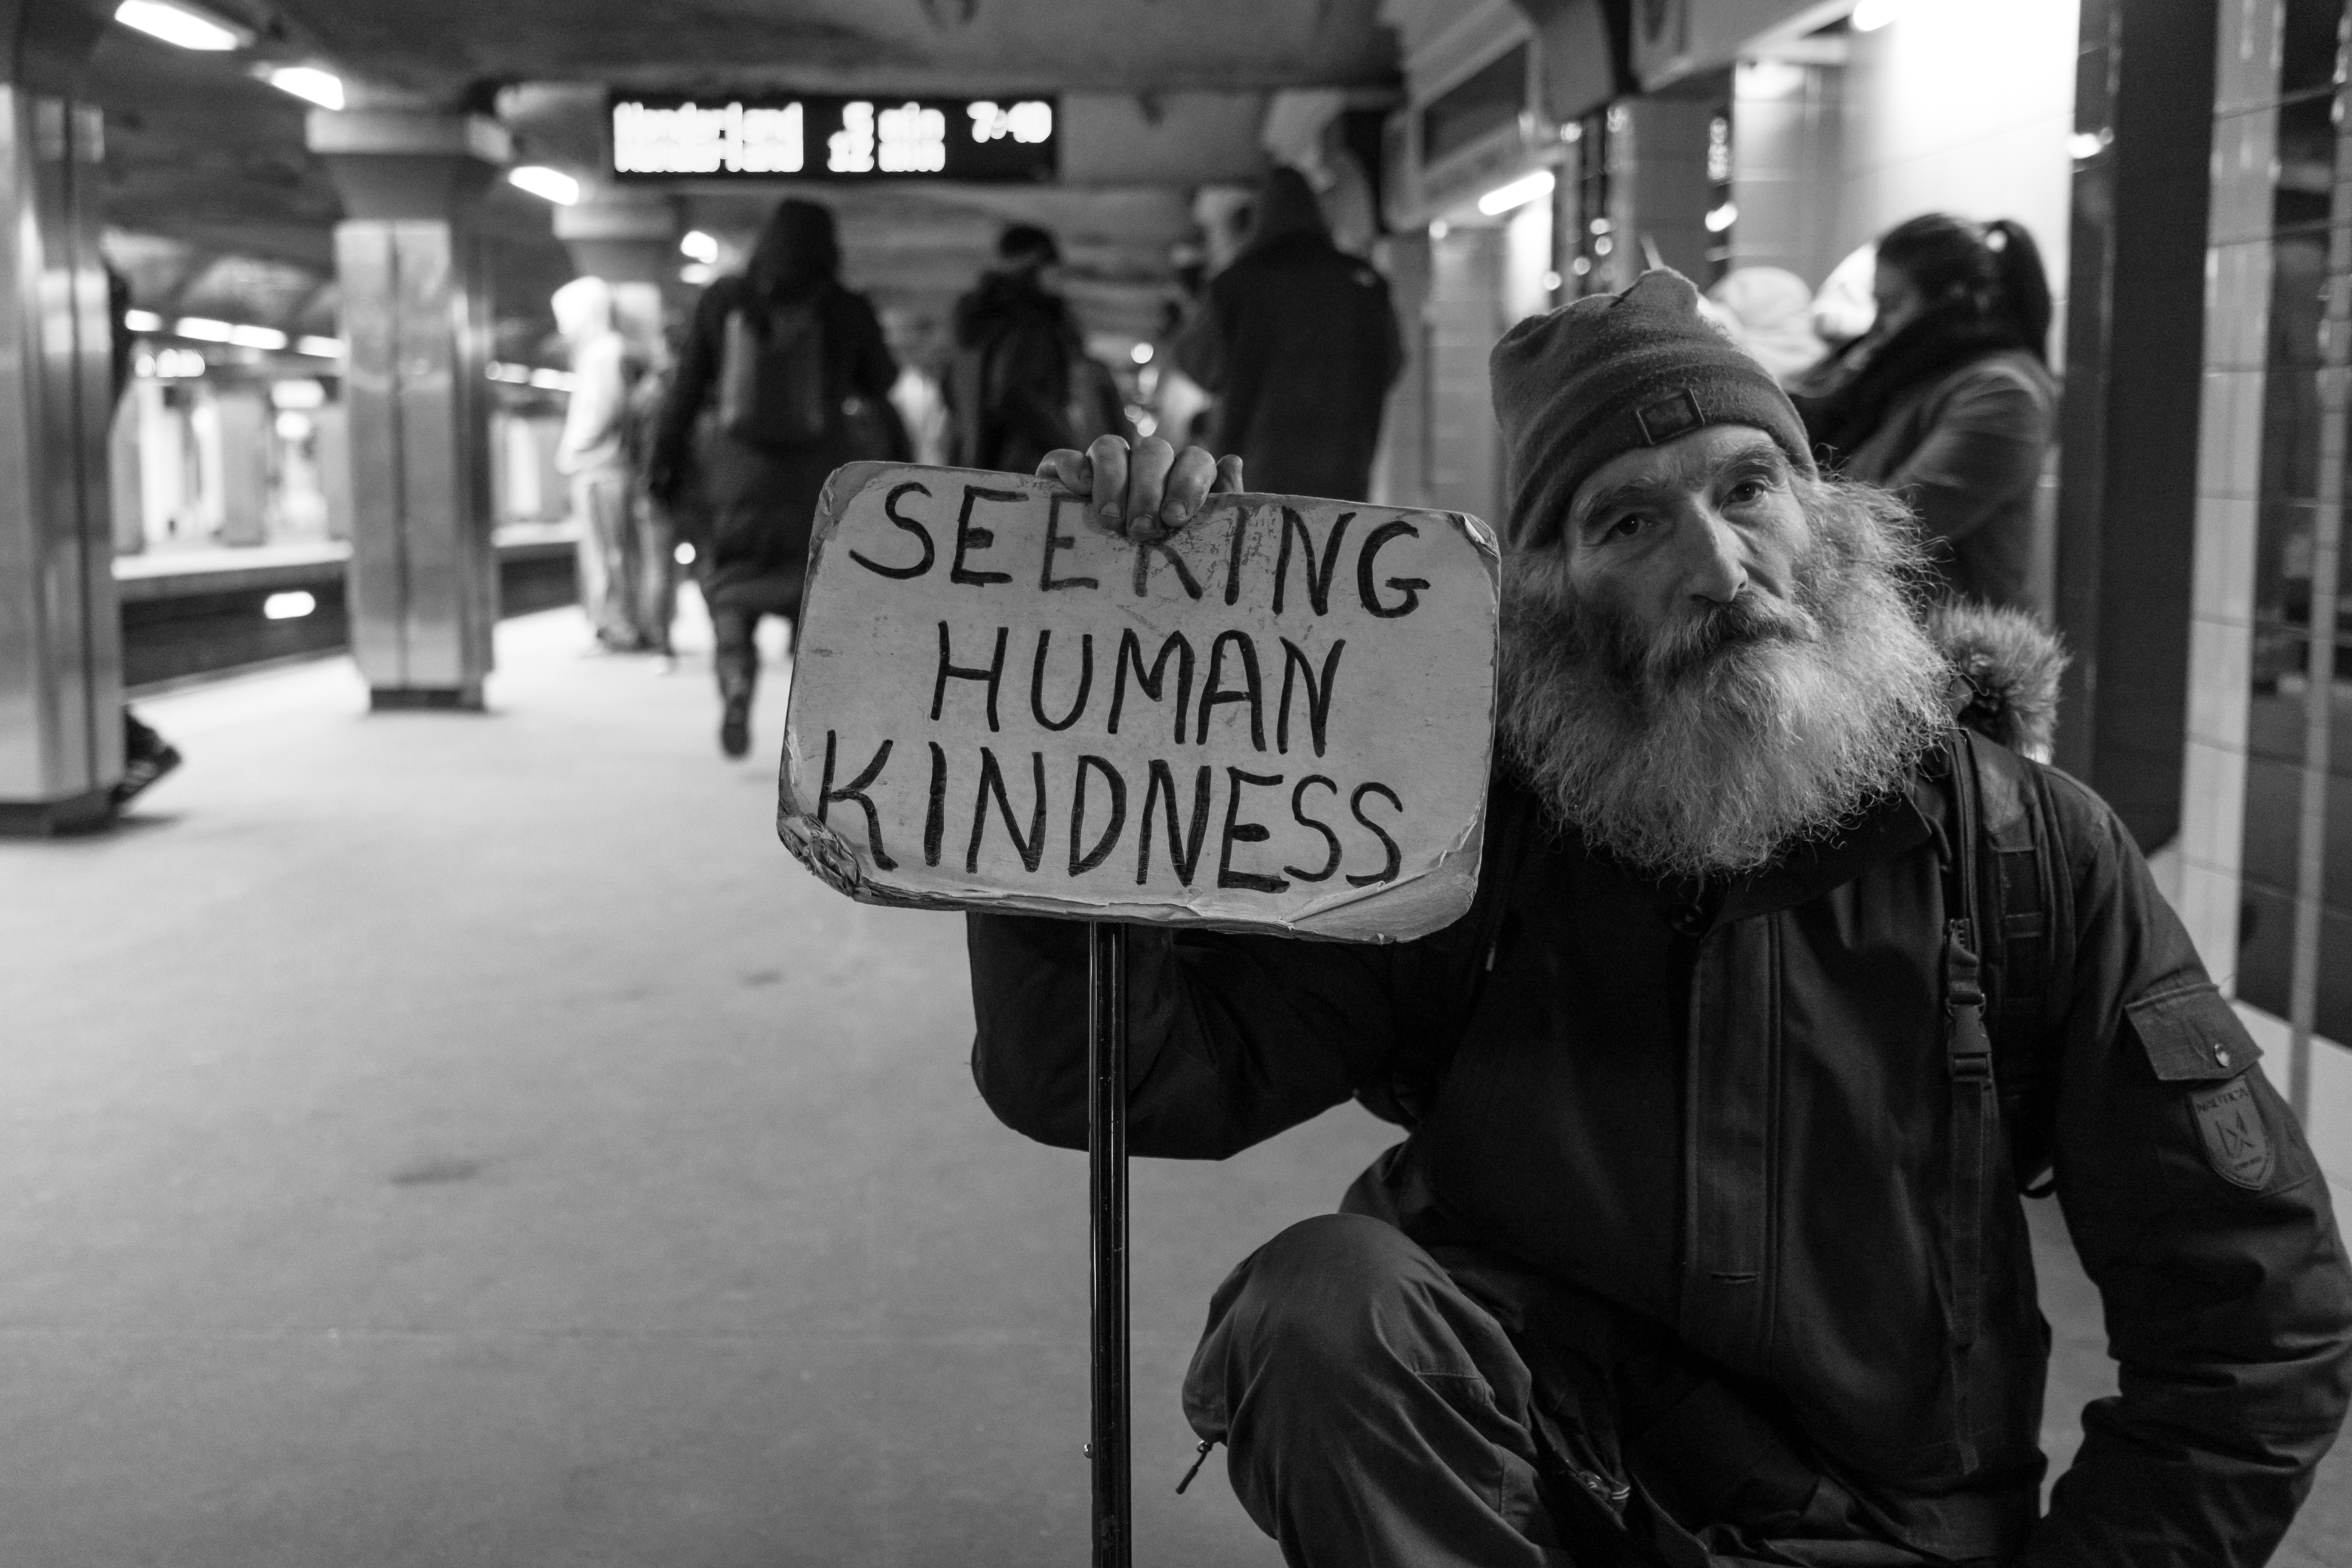 """I met Michael in a Boston subway station. I told him I liked his sign. """"What matters is what it means to you,"""" he told me.I asked what it meant to him. """"Doing a deed or expressing kindness to another person without expecting anything in return,"""" Michael said.I love approaching strangers wherever I go. Listening and talking to them teaches you about people and how similar we all are to one another. Just like Michael, we're all seeking human kindness."""